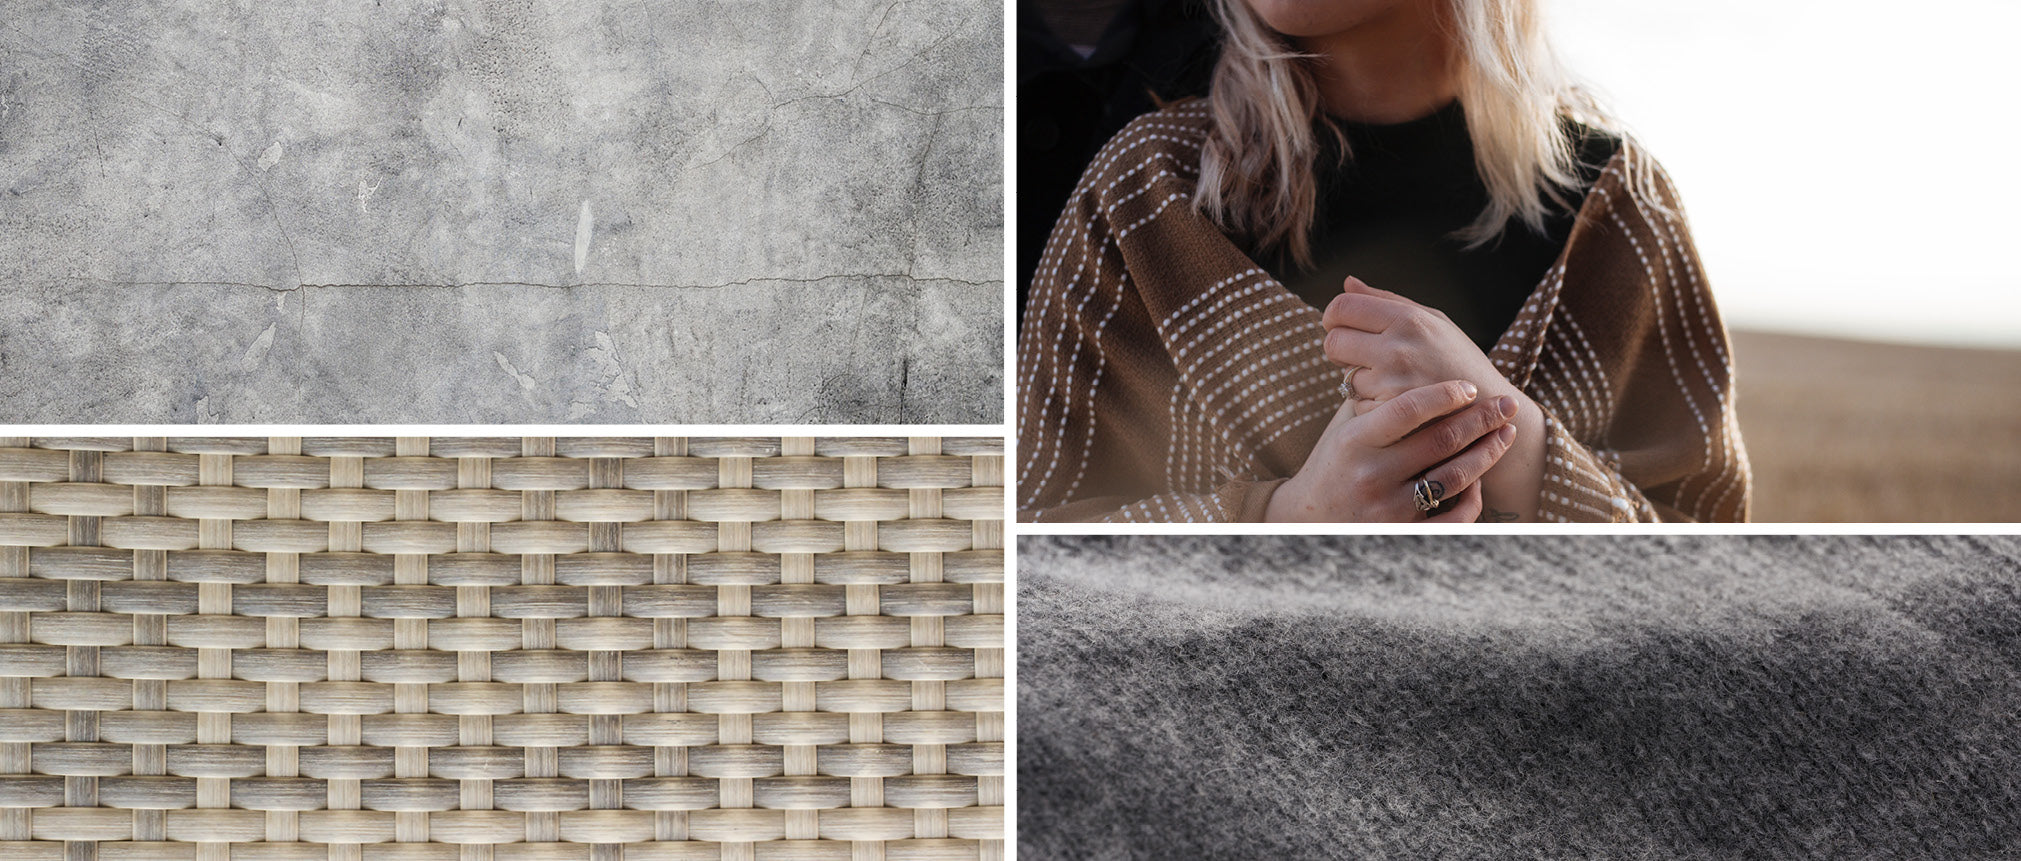 Blanket and textures made from natural materials